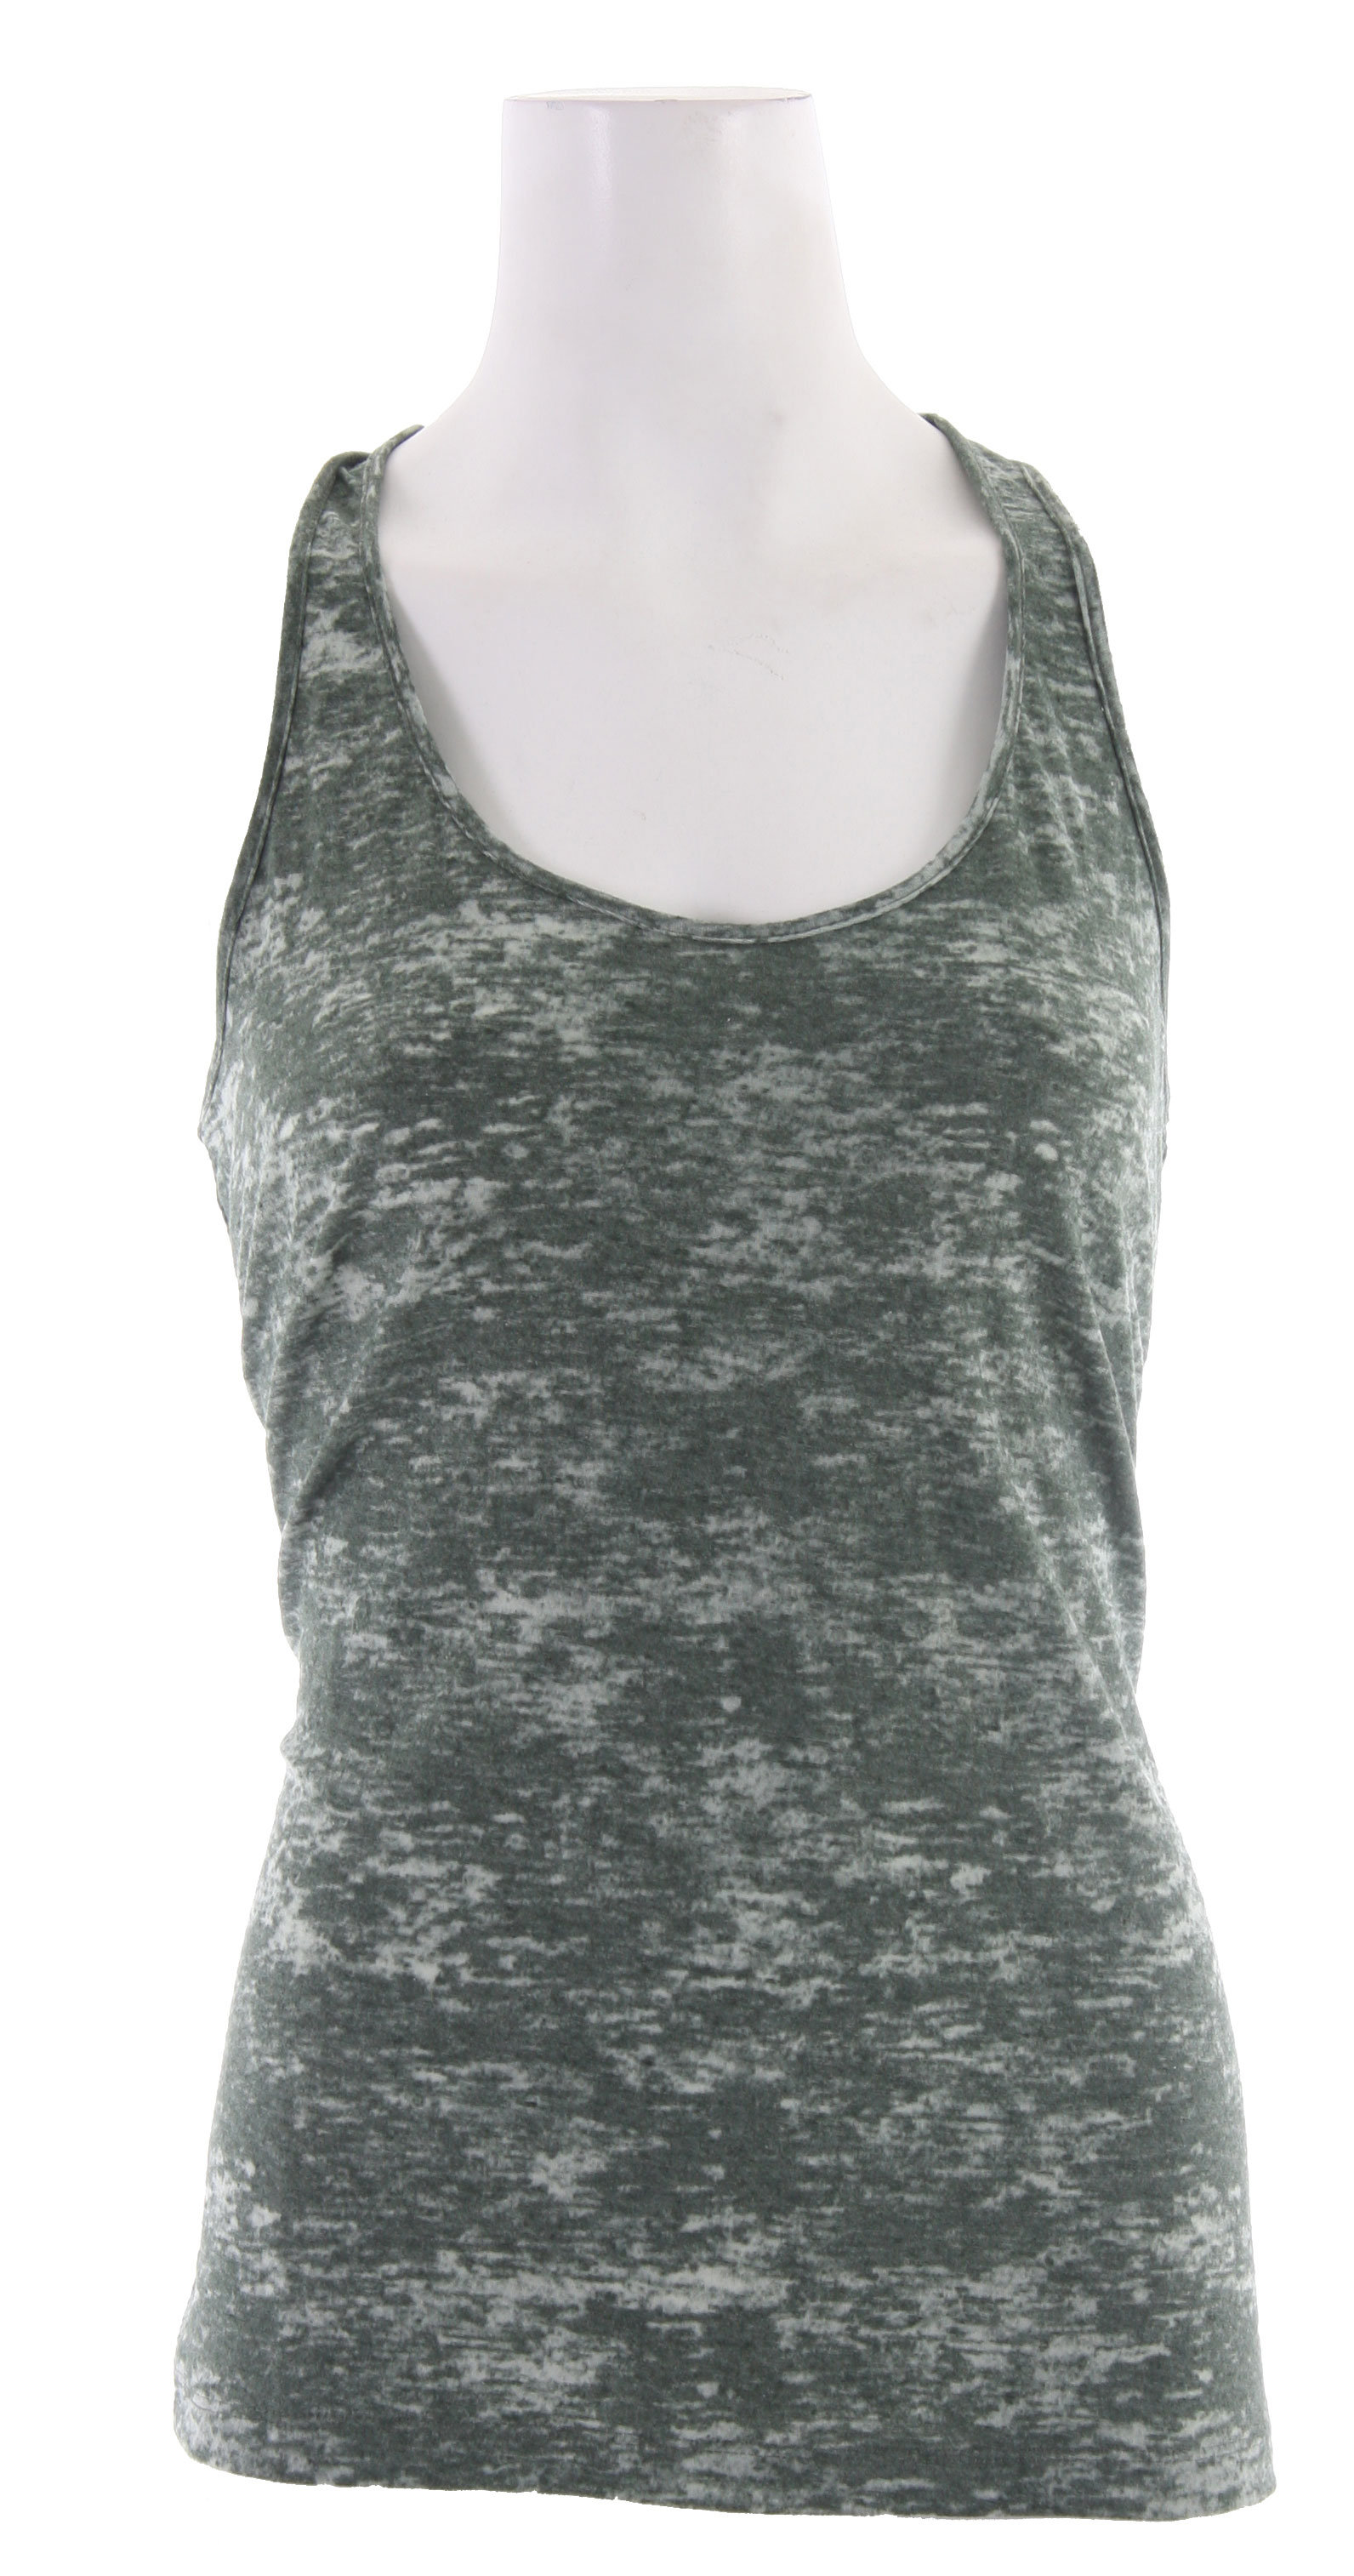 Surf Key Features of the Volcom Moclov Twist Back Tank Top: 50% Polyester / 50% Cotton Jersey, 115gm. - $15.95